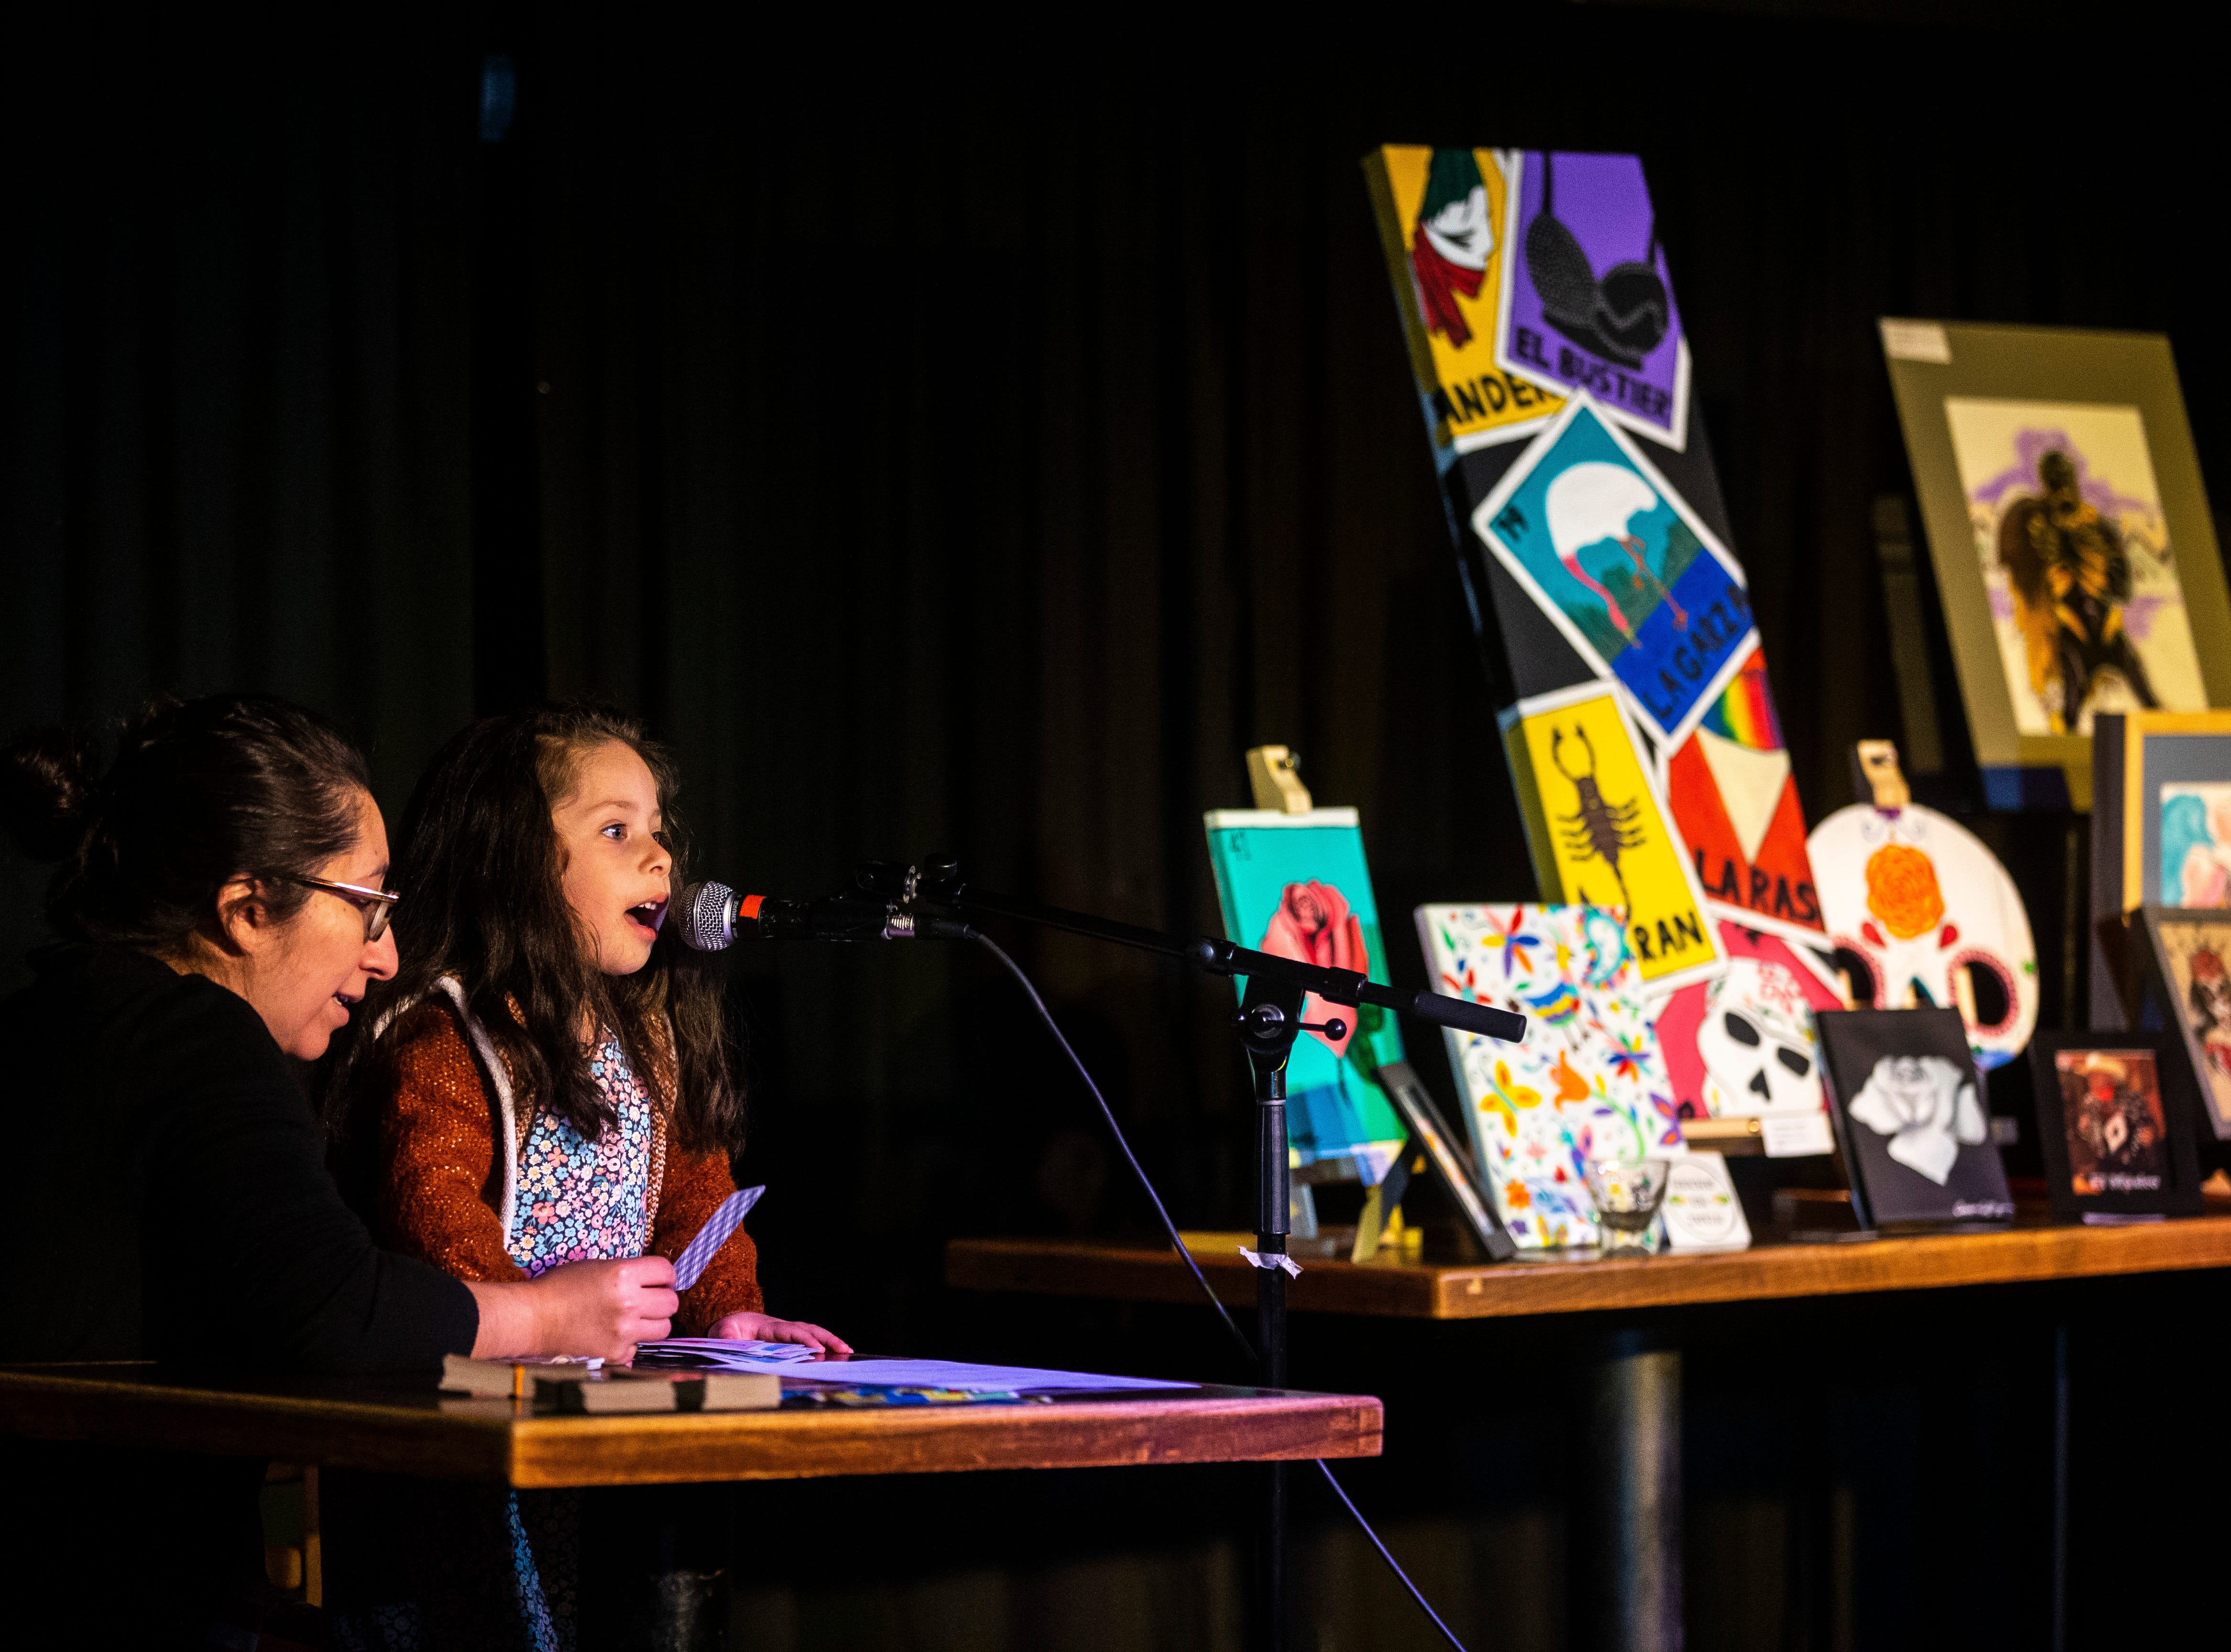 Paloma Bribriesco, 4, calls out cards during a Lotería game night hosted by LULAC Council 308 on Sunday, March 31, 2019, at The Mill in downtown Iowa City, Iowa.